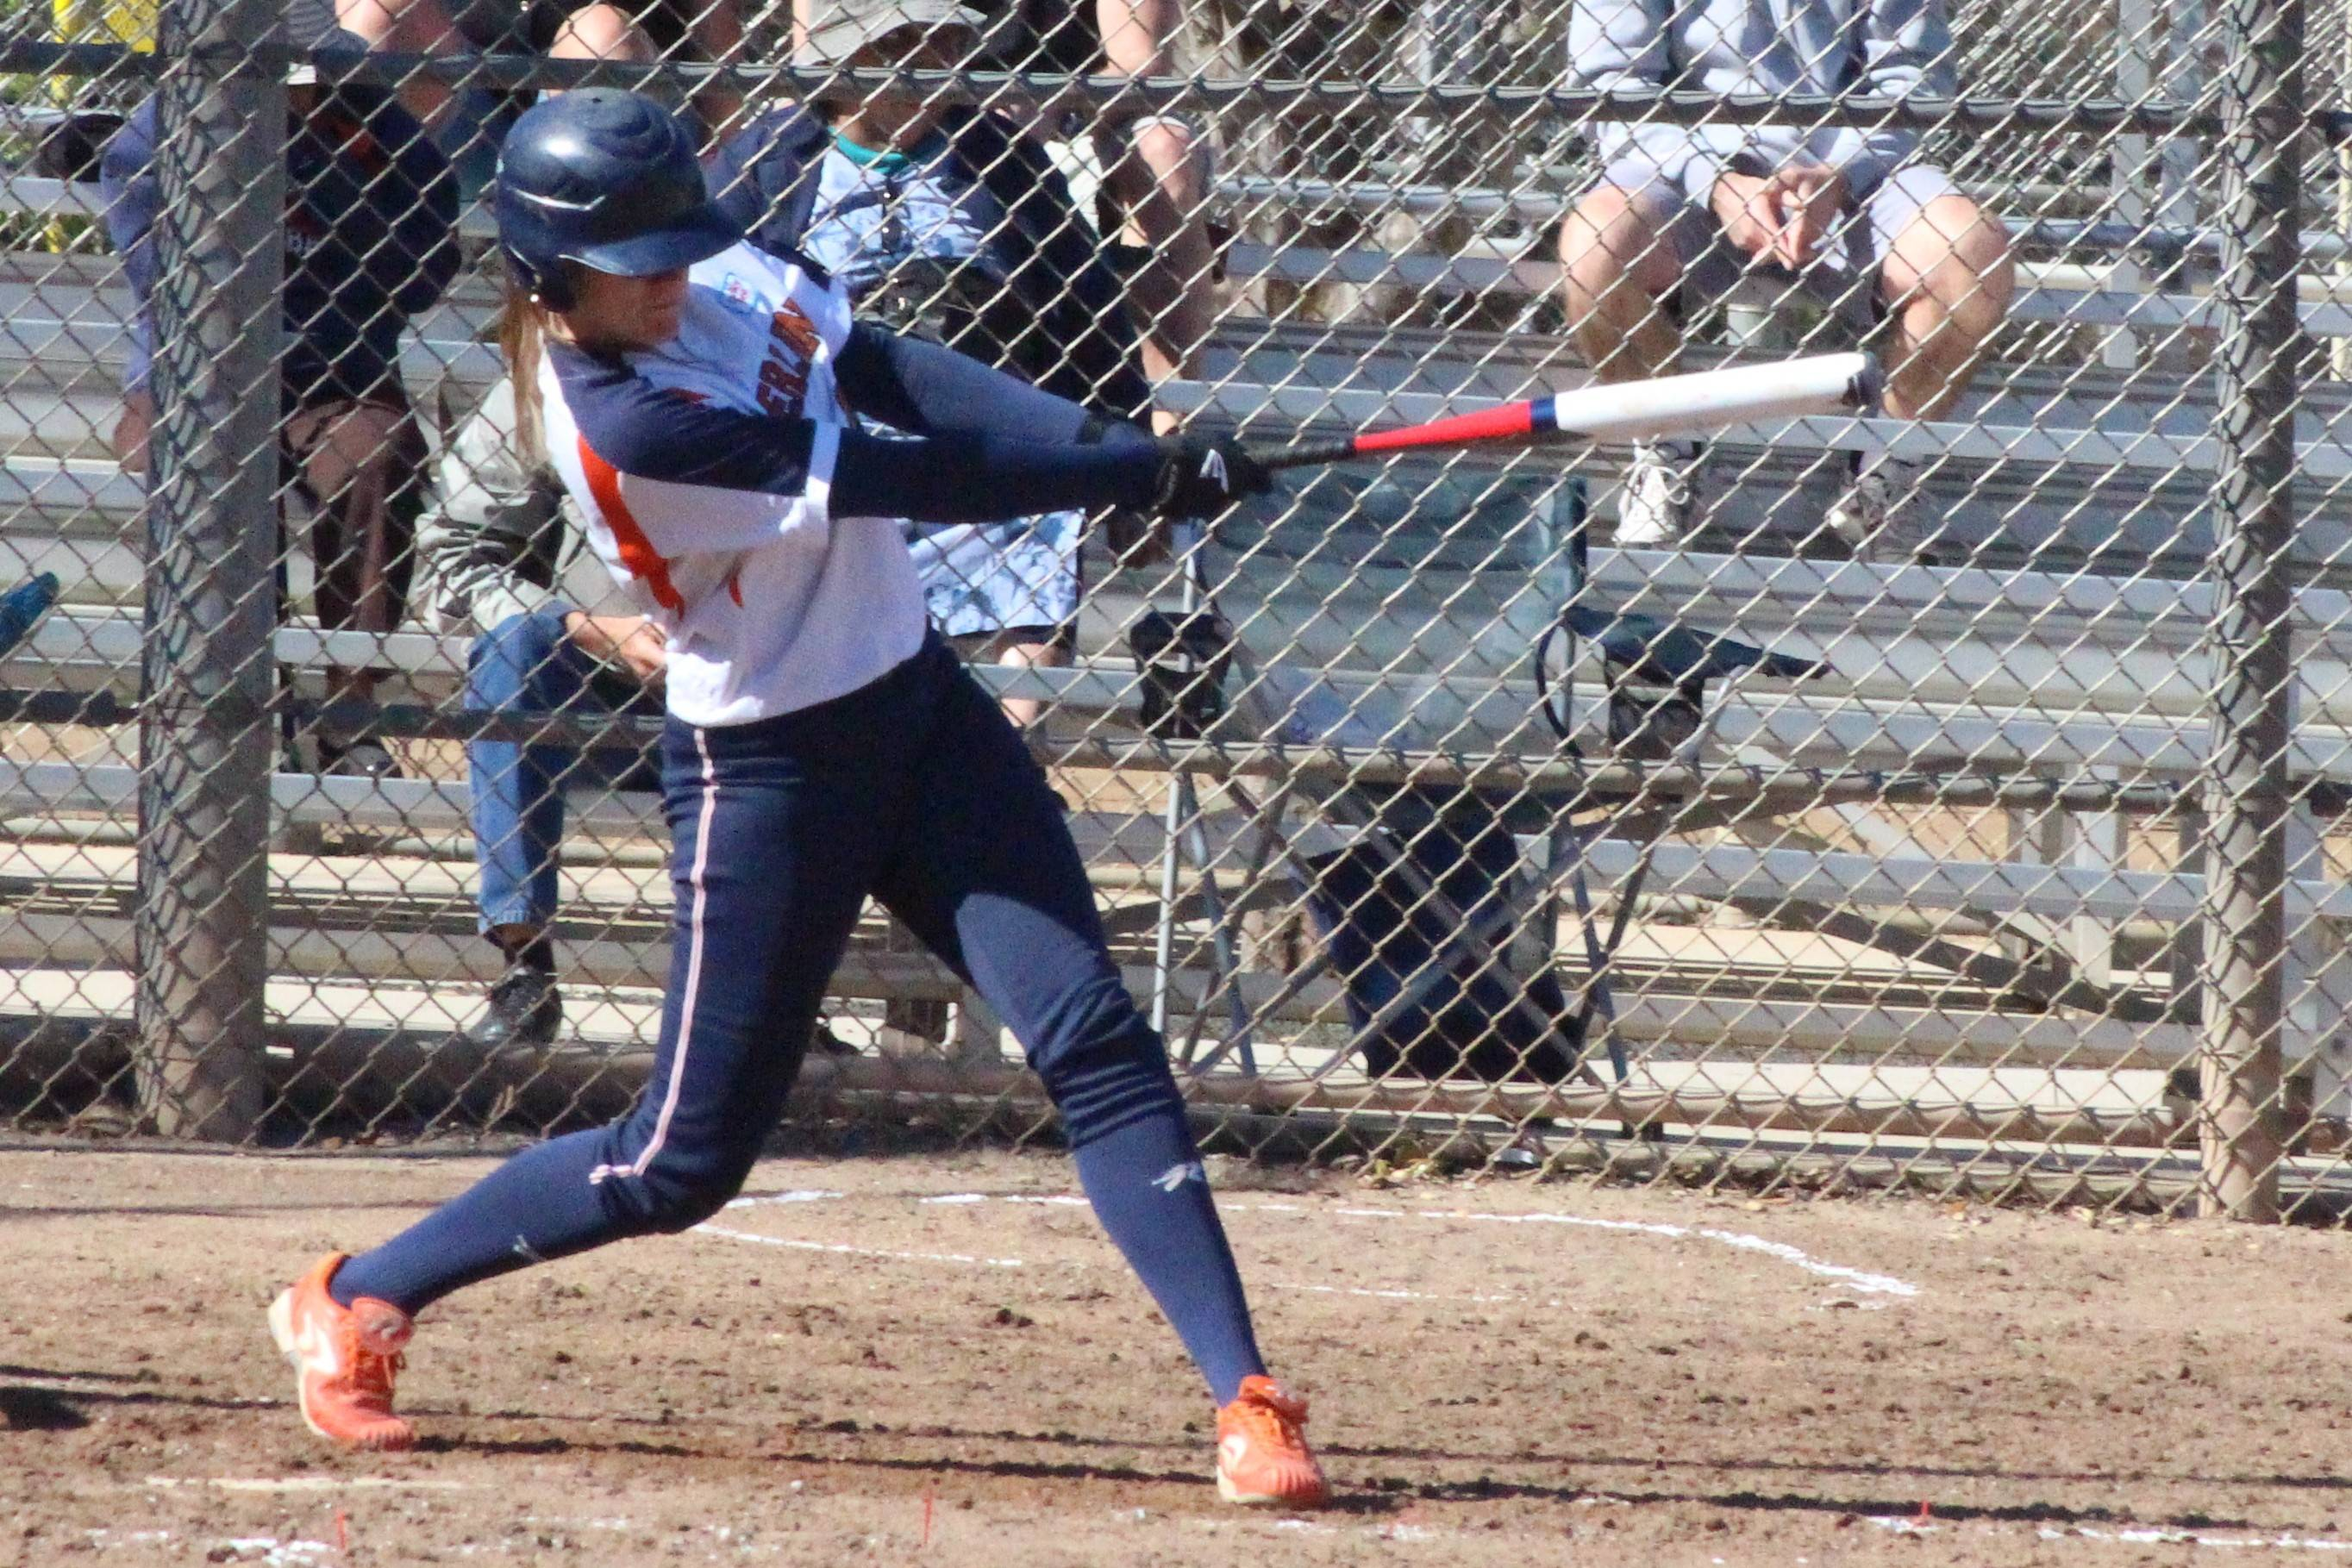 First baseman-center fielder Saskia Kosterink is among the top players on the Netherlands national softball team playing in Elgin this weekend at the John Radtke Memorial Women's Fastpitch Softball Tournament. The team is prepping for the world championships next month.